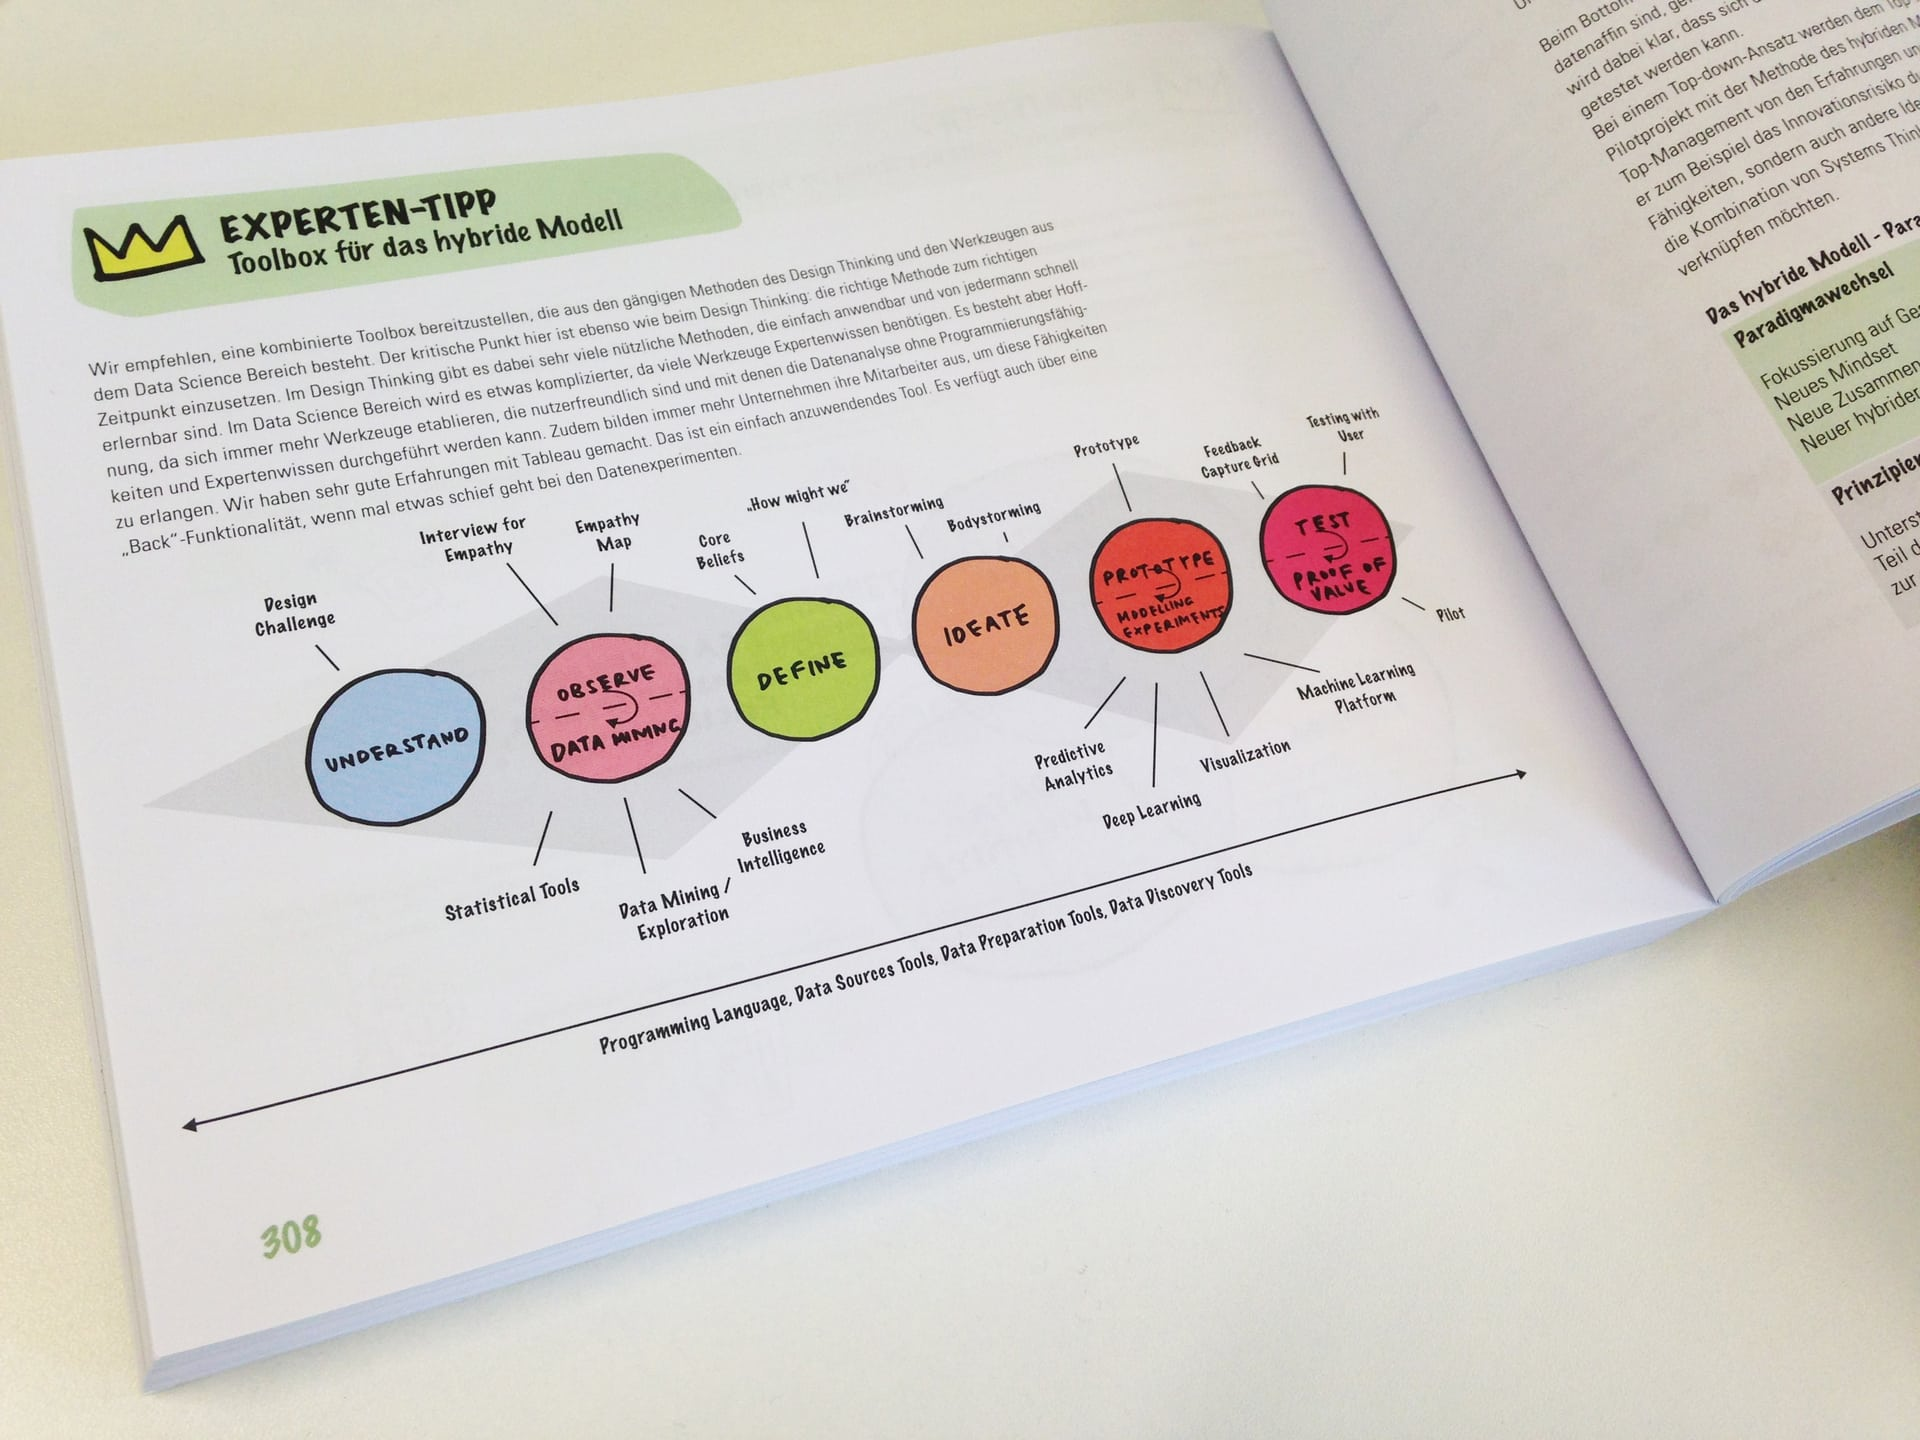 hybrides_modell_das_design_thinking_playbook